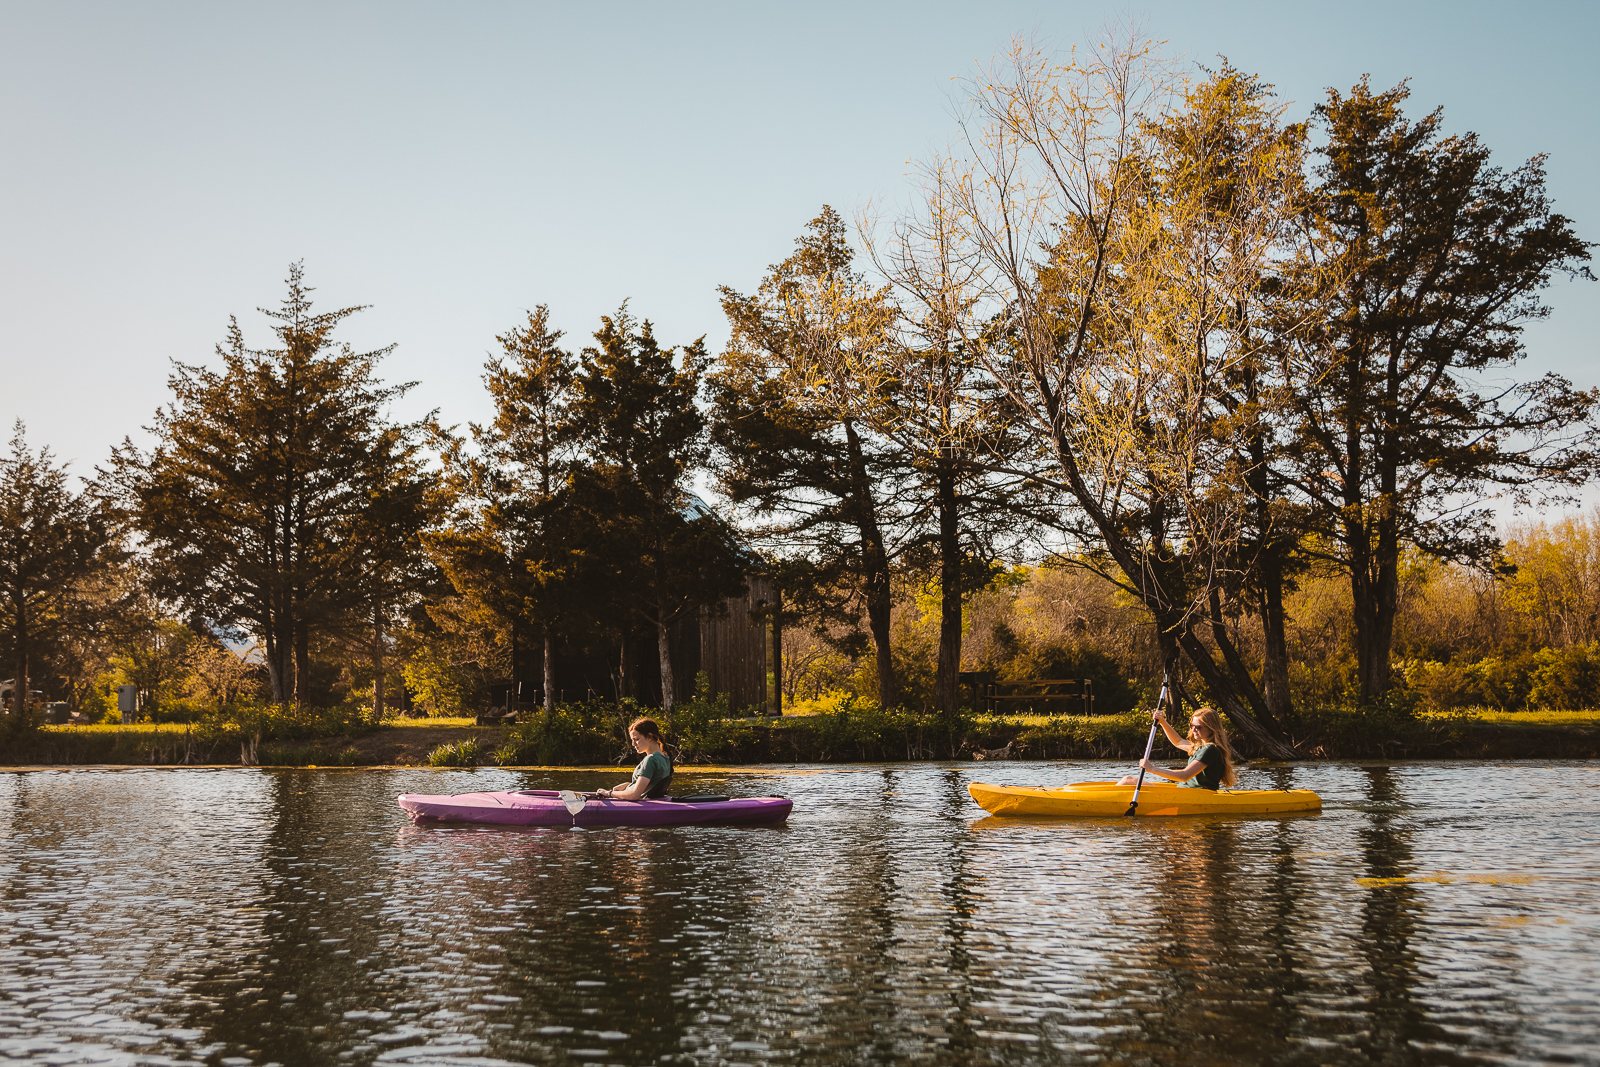 The Quarry Pond is the source of beauty and fun while at BaseCamp. Use one of our paddleboards, kayaks, or canoe and enjoy the serenity of the water.